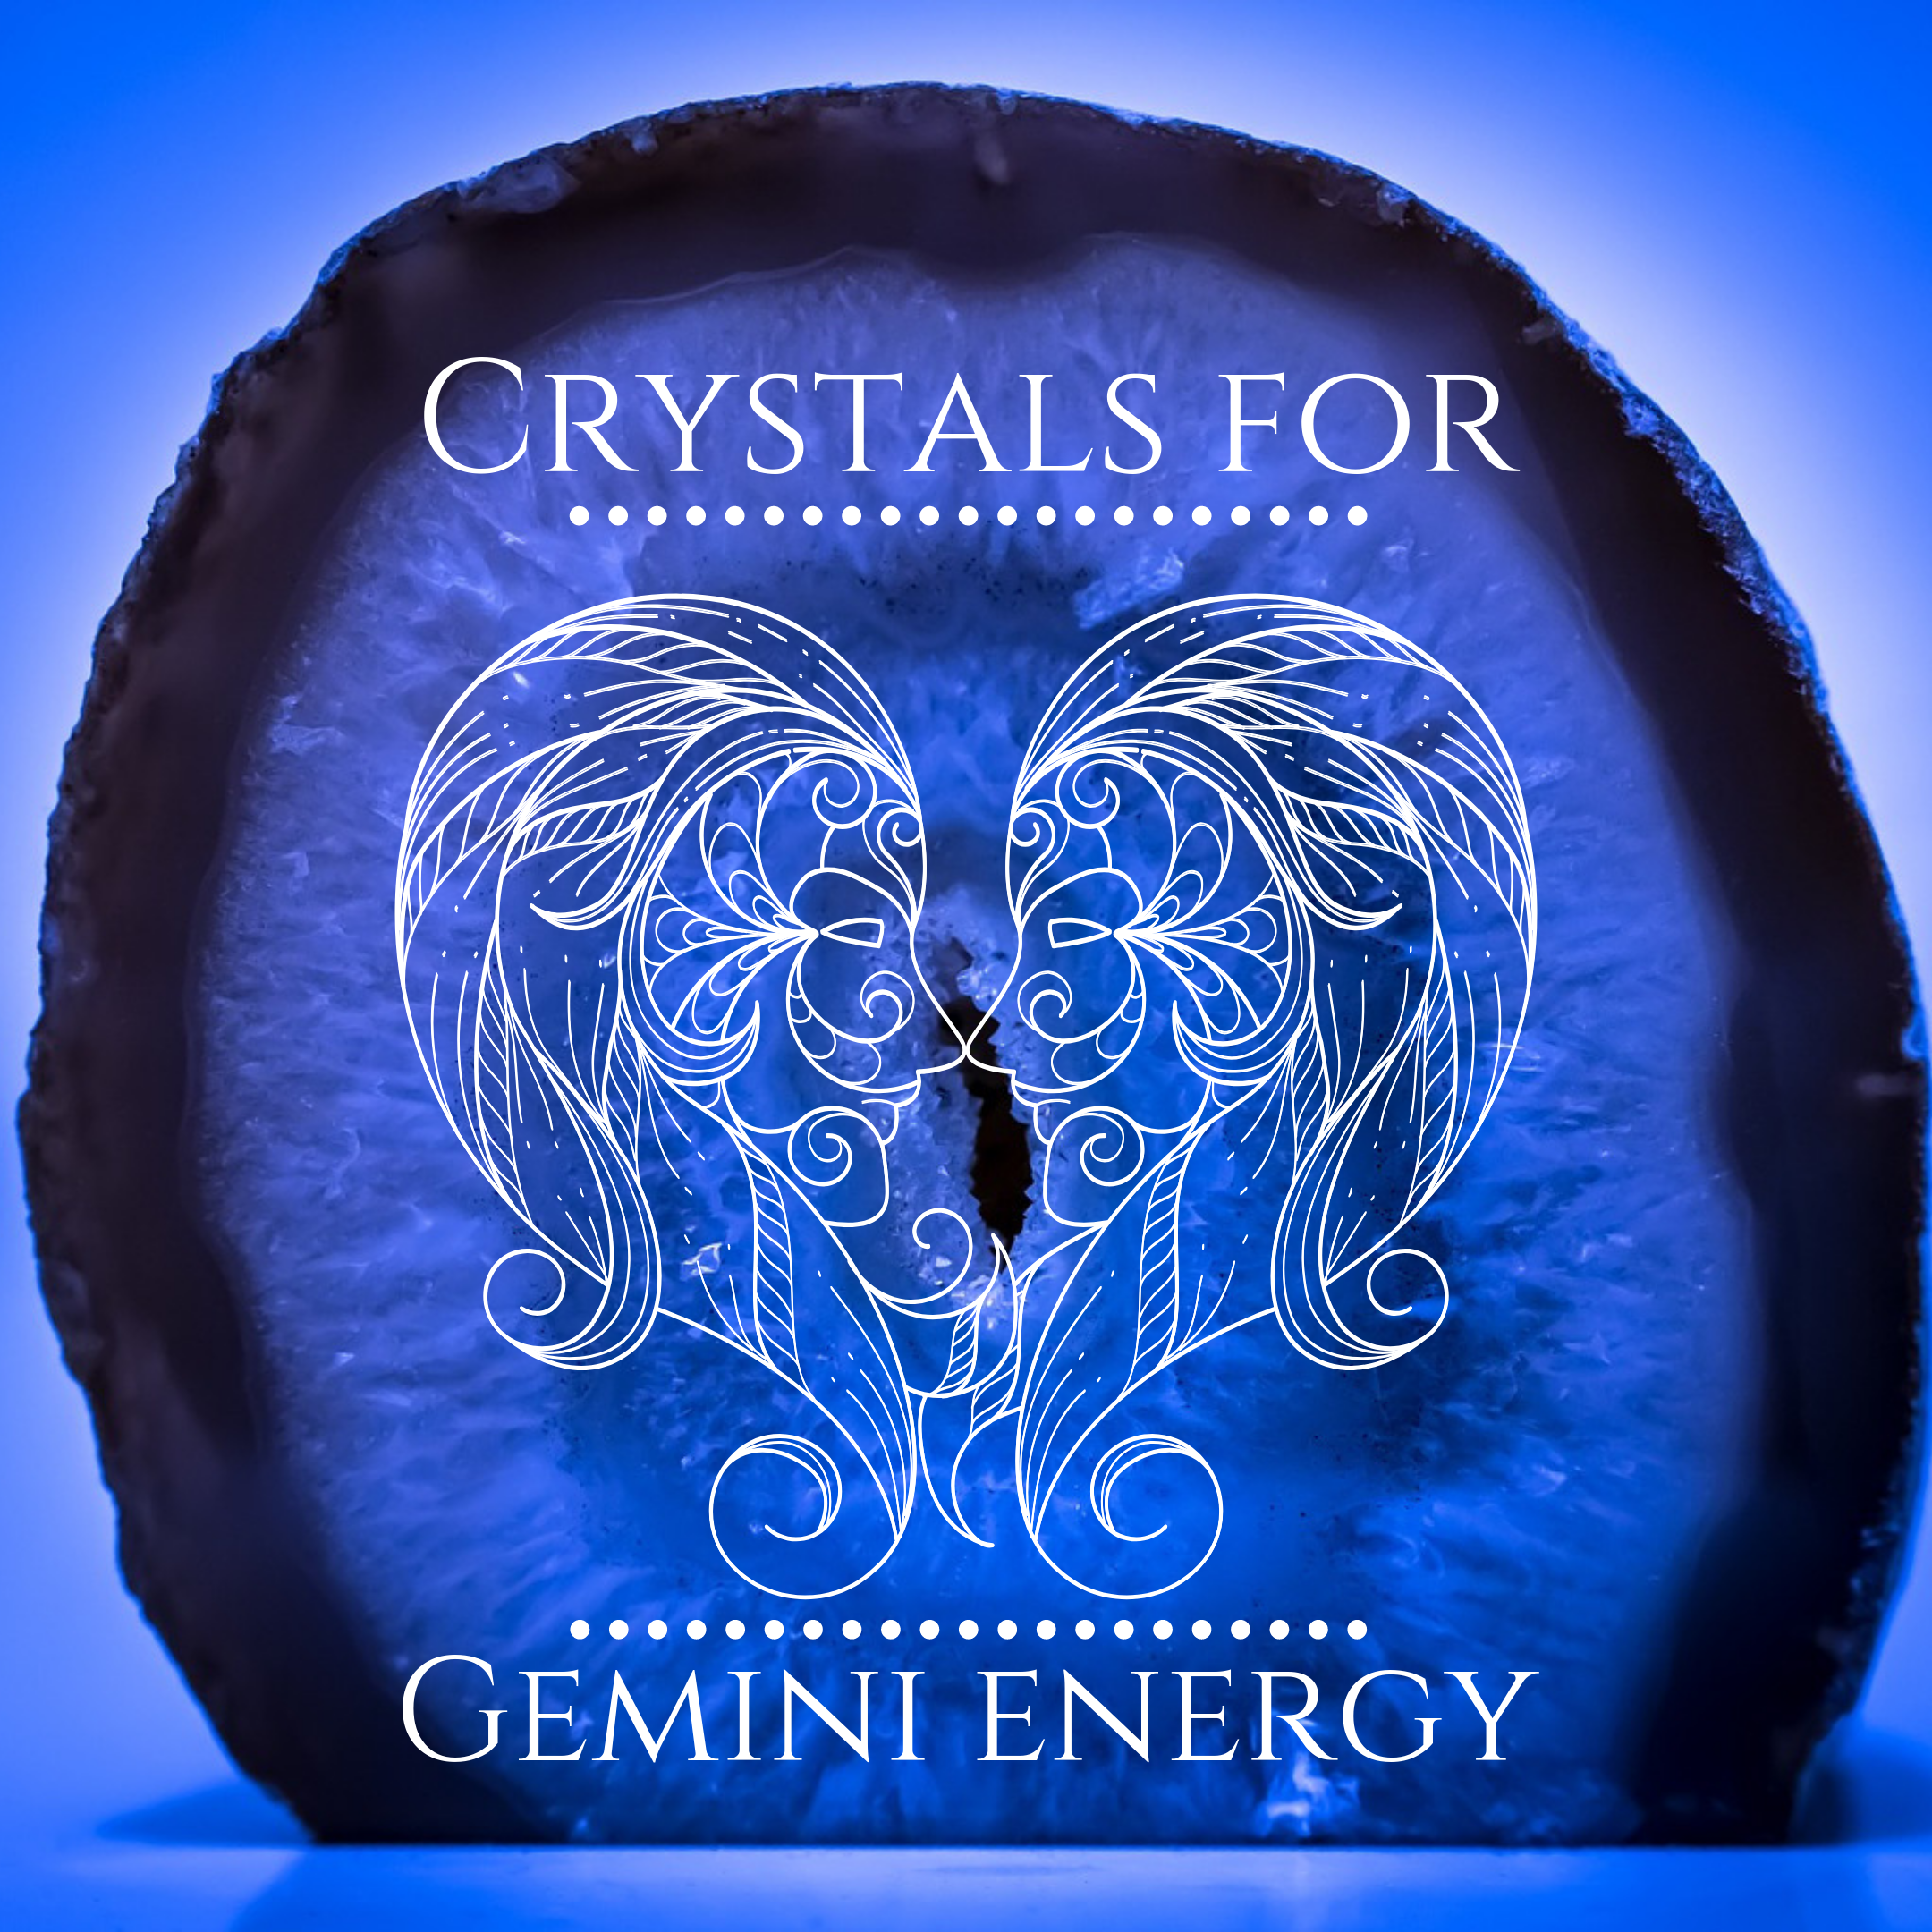 Crystals for Gemini Energy